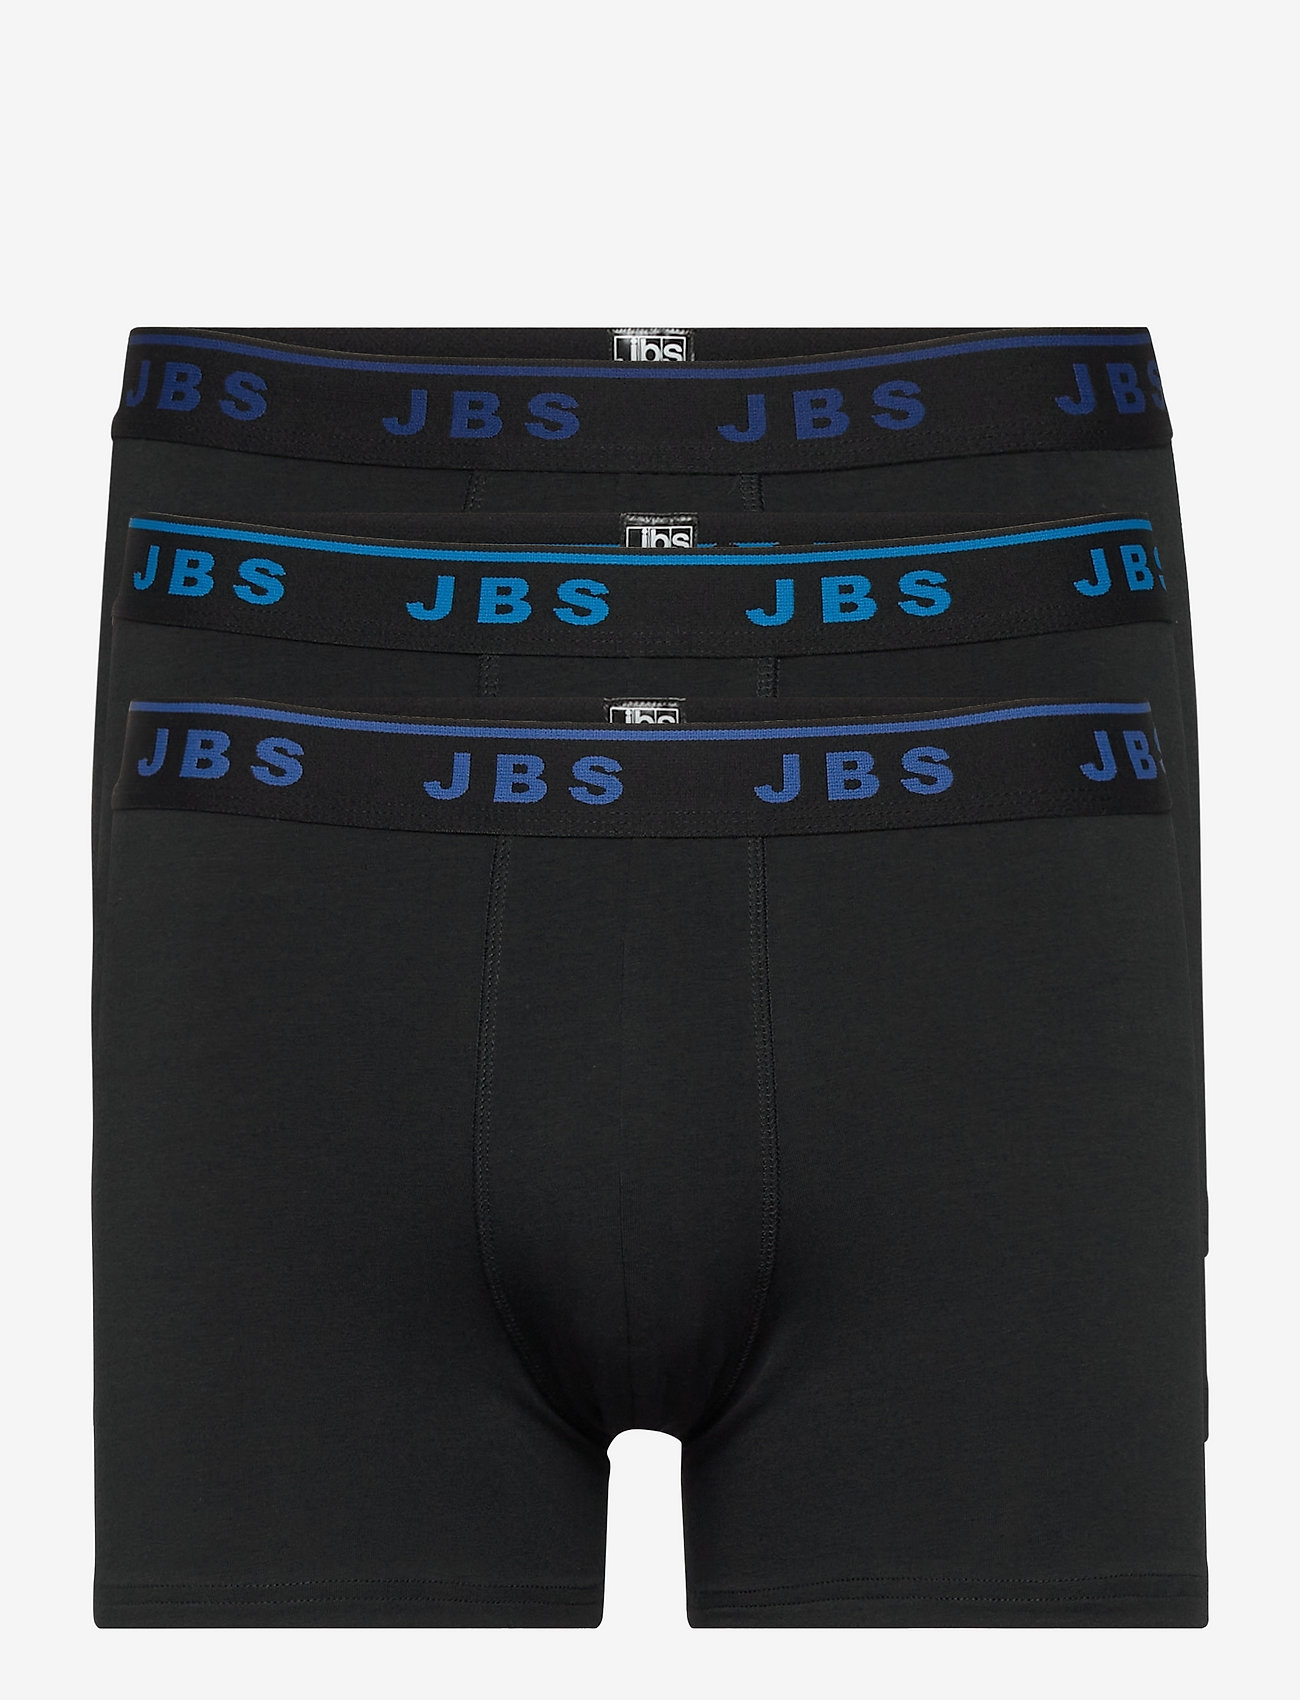 JBS - JBS tights 3-pack - undertøy - black